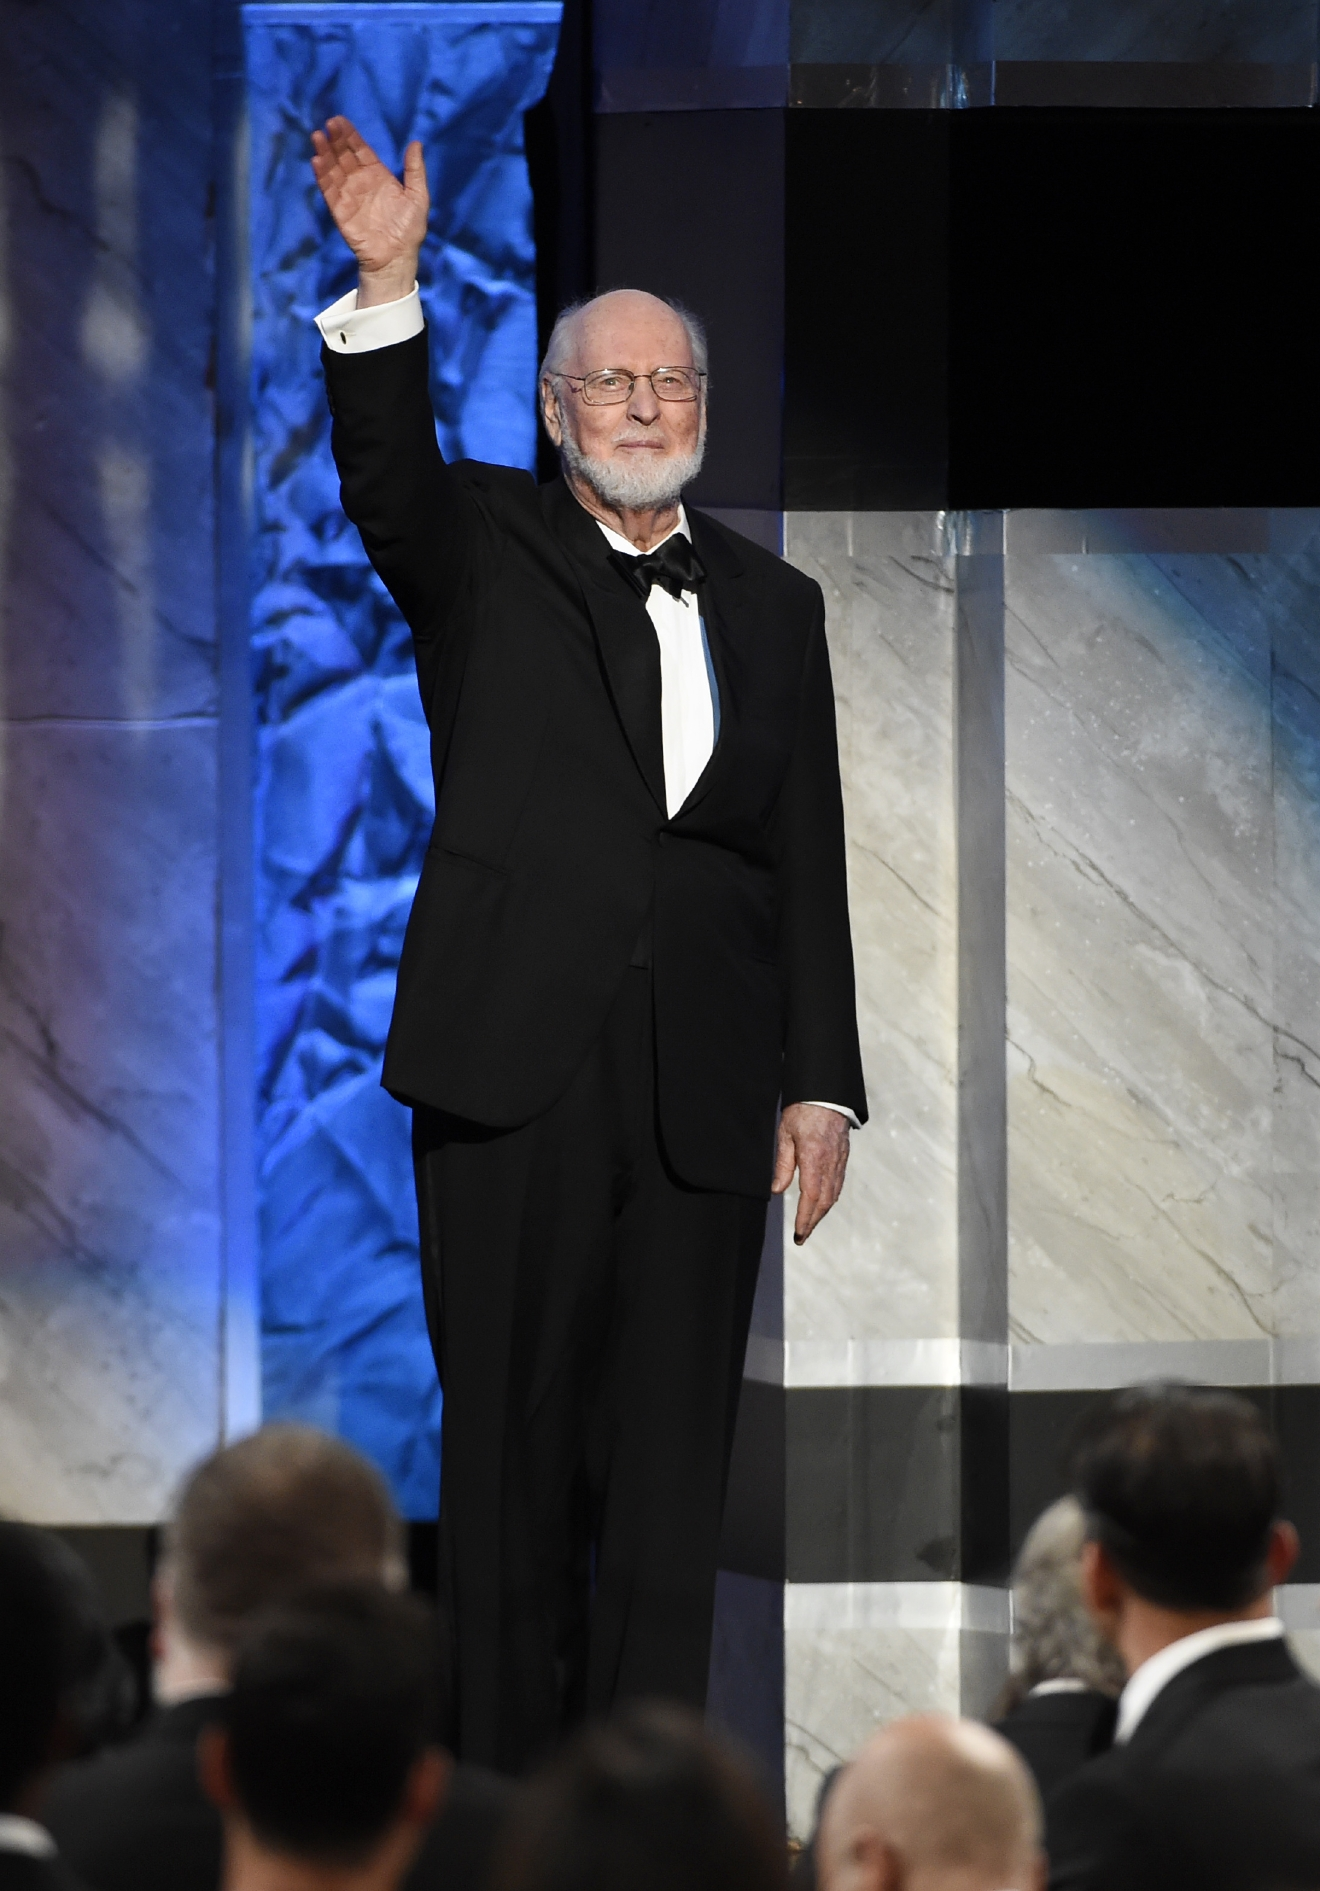 Composer John Williams waves to the audience as he is introduced onstage during the 2016 AFI Life Achievement Award Gala Tribute to Williams at the Dolby Theatre on Thursday, June 9, 2016, in Los Angeles. (Photo by Chris Pizzello/Invision/AP)